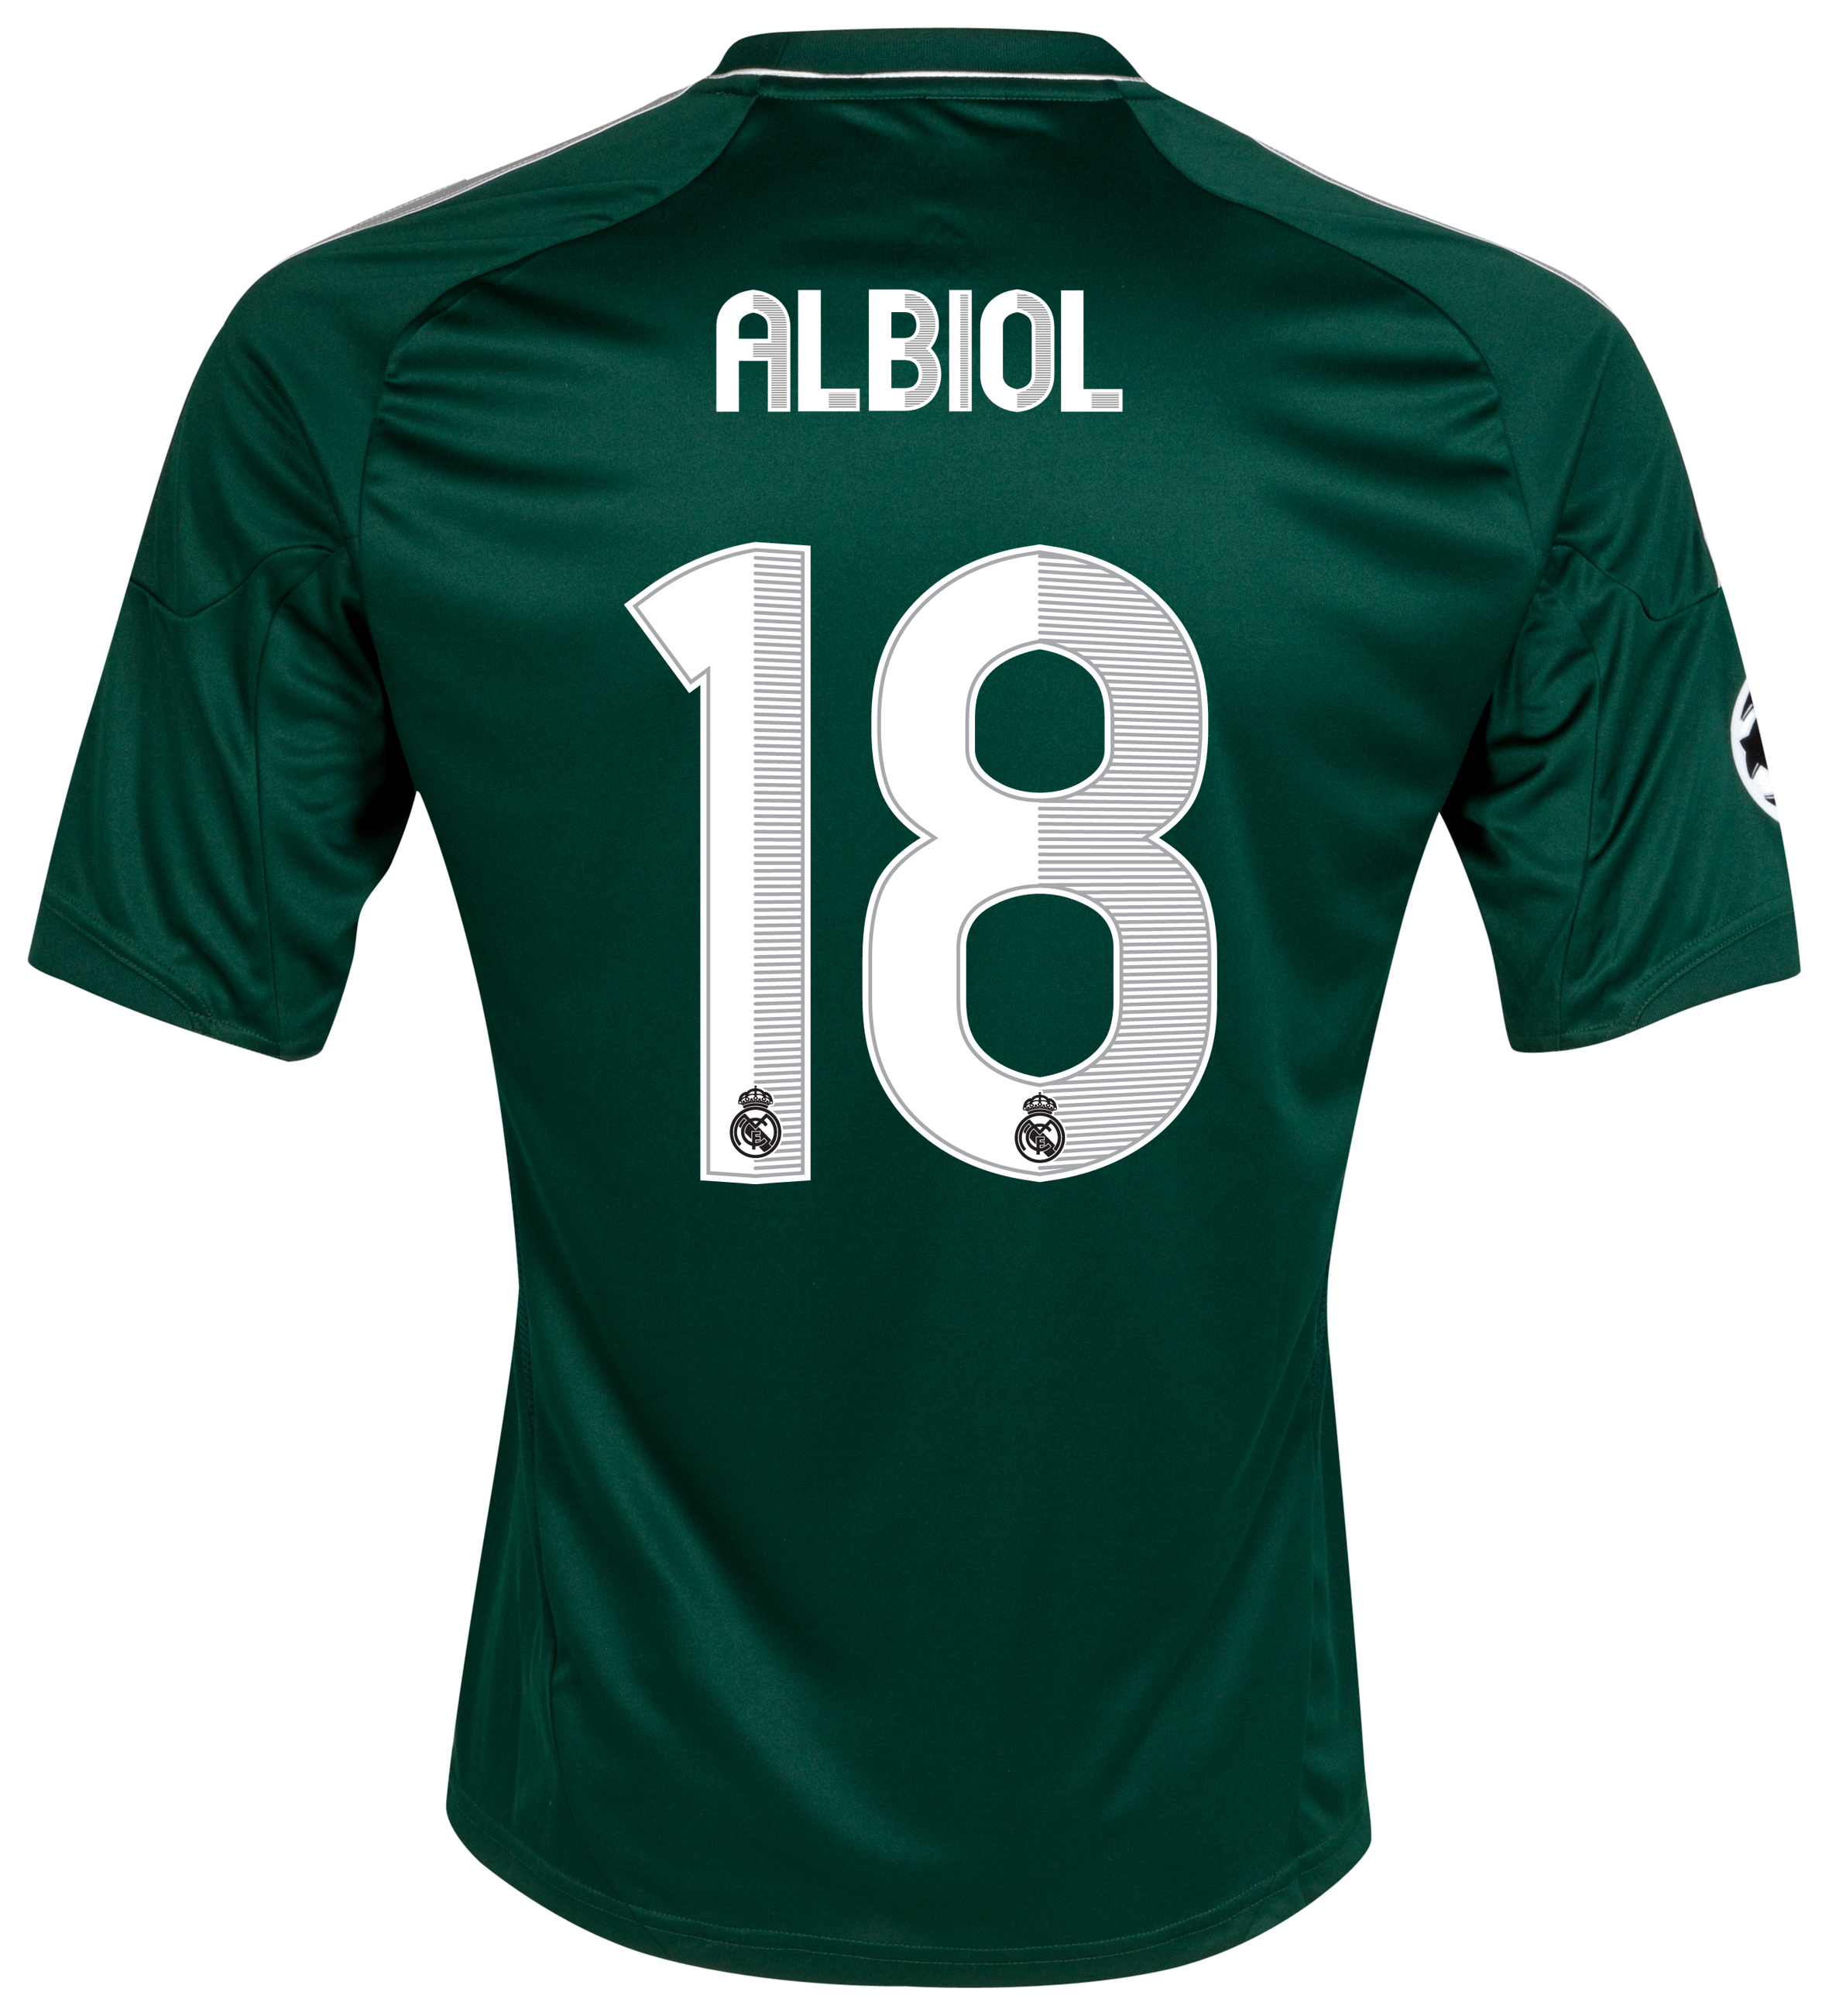 Real Madrid UEFA Champions League Third Shirt 2012/13 with Albiol 18 printing